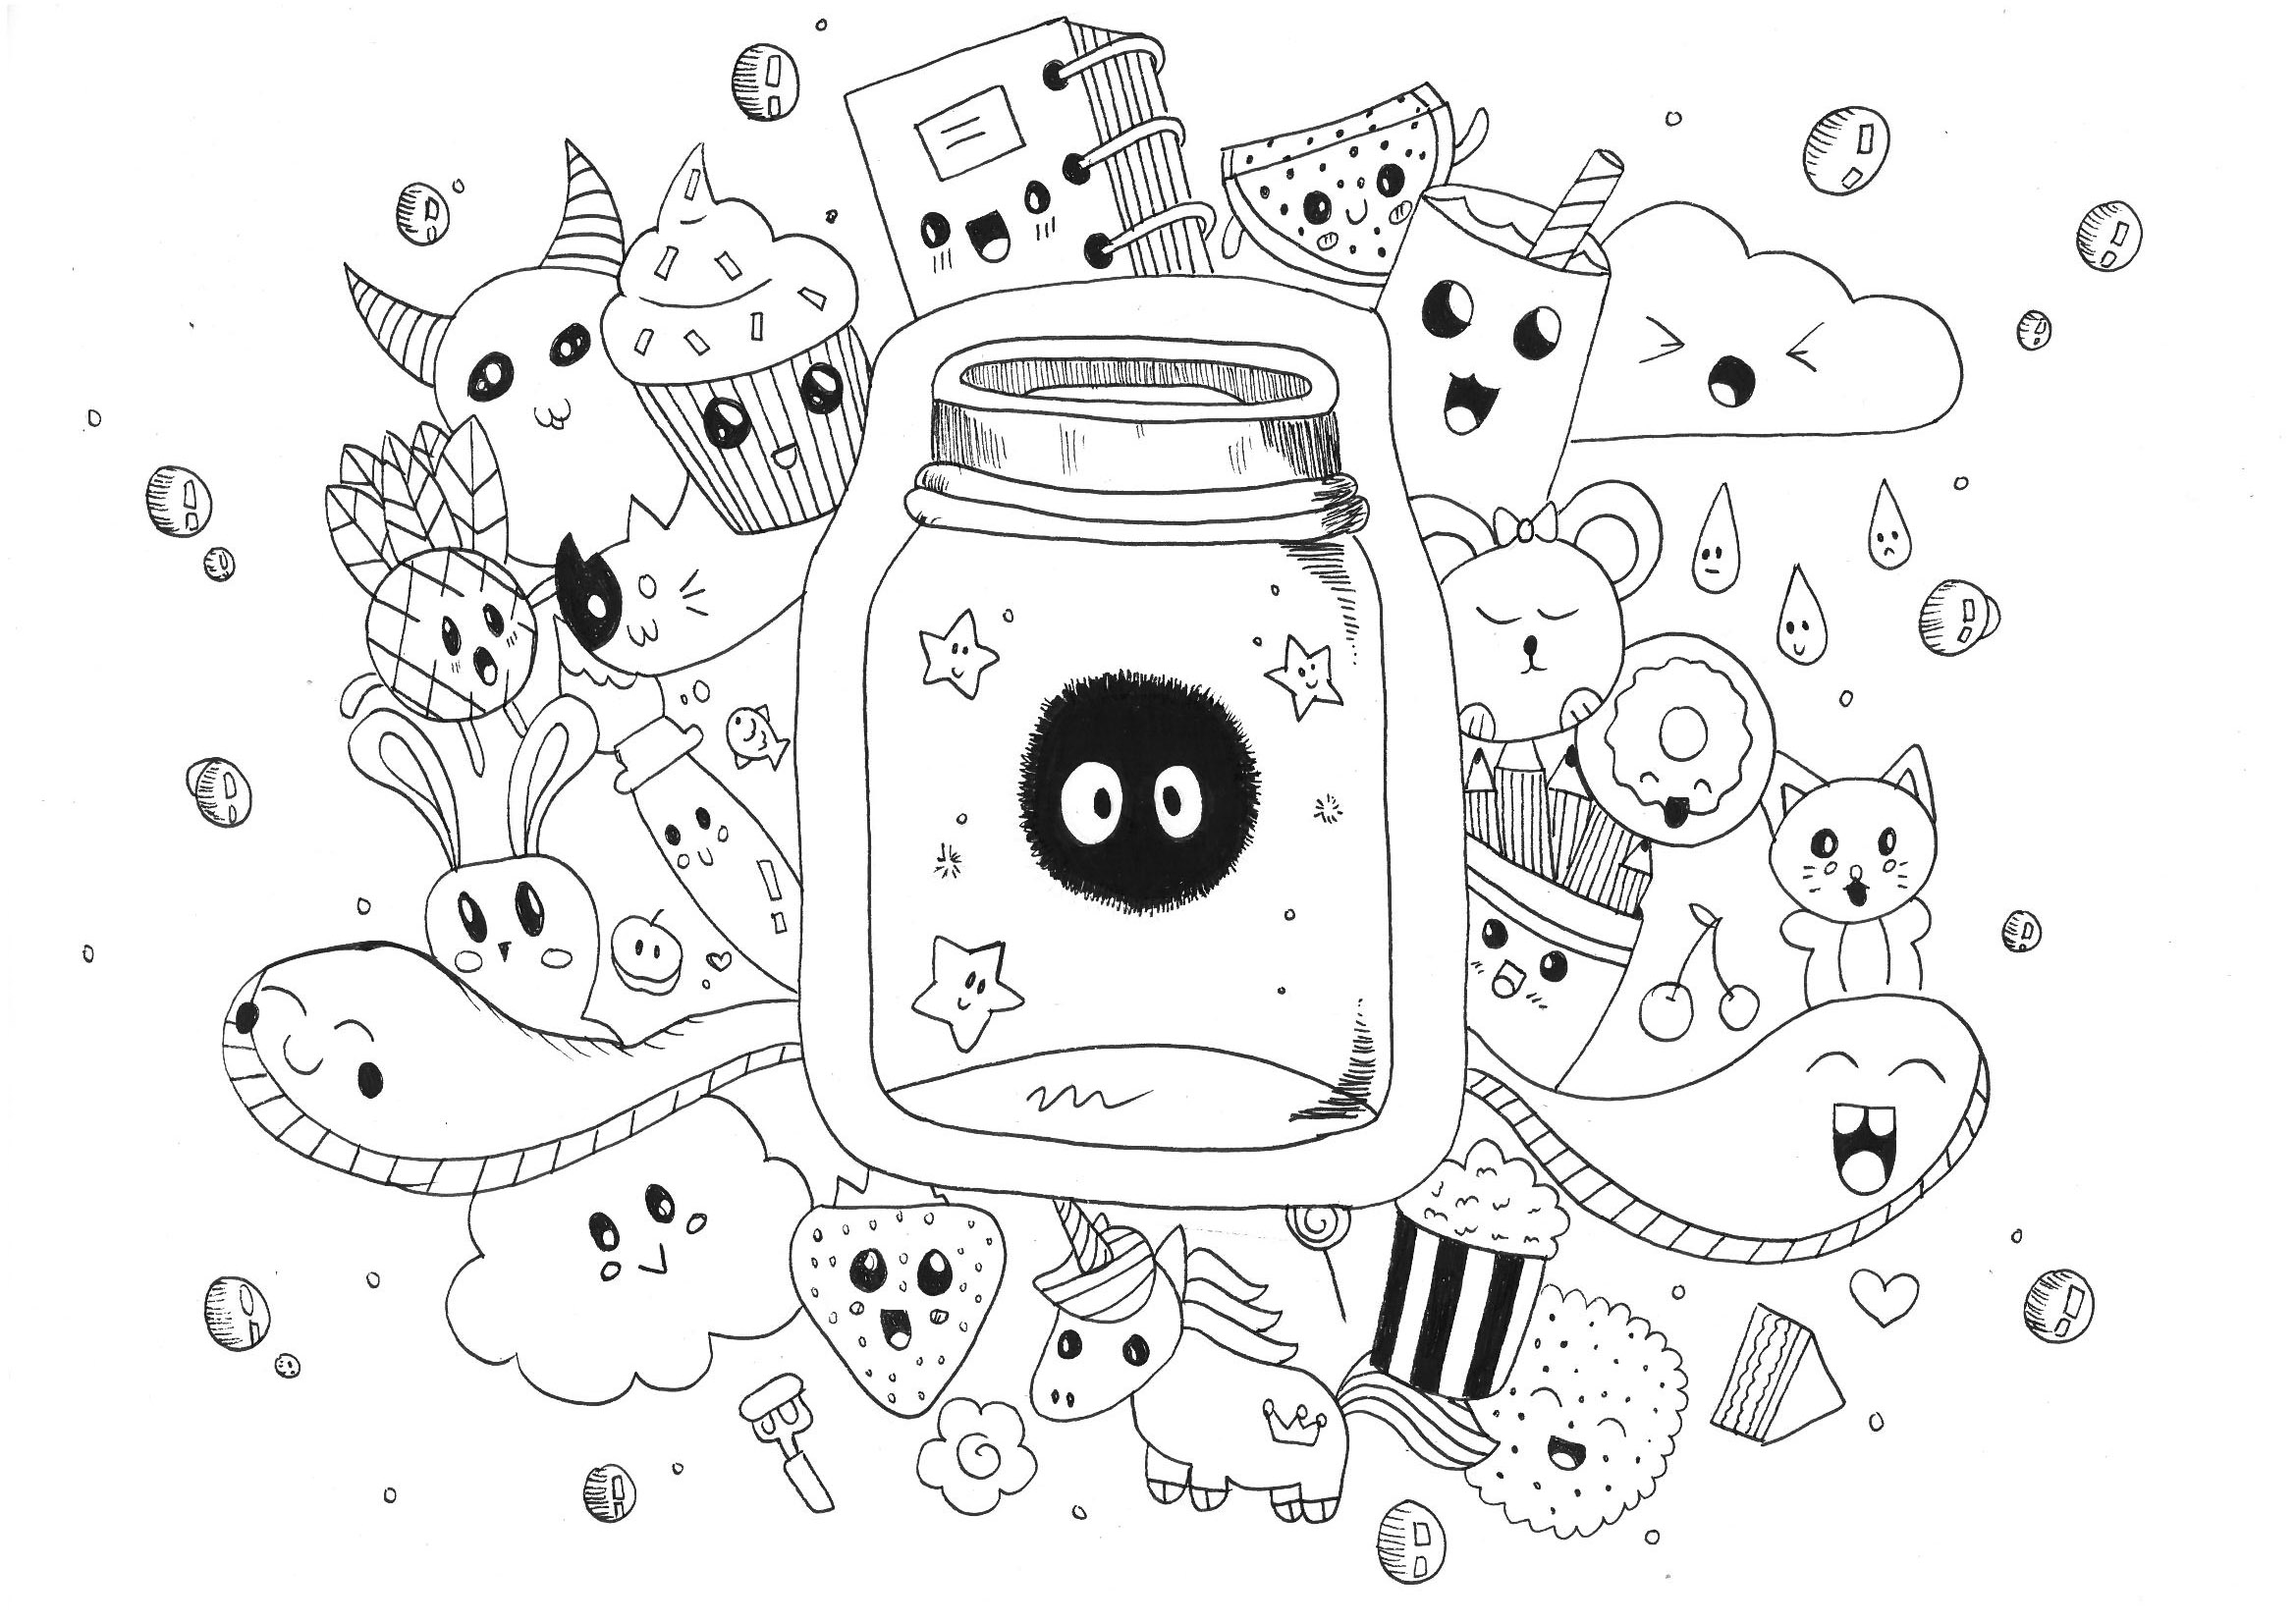 kids art coloring pages doodle art to print doodle art kids coloring pages coloring art kids pages